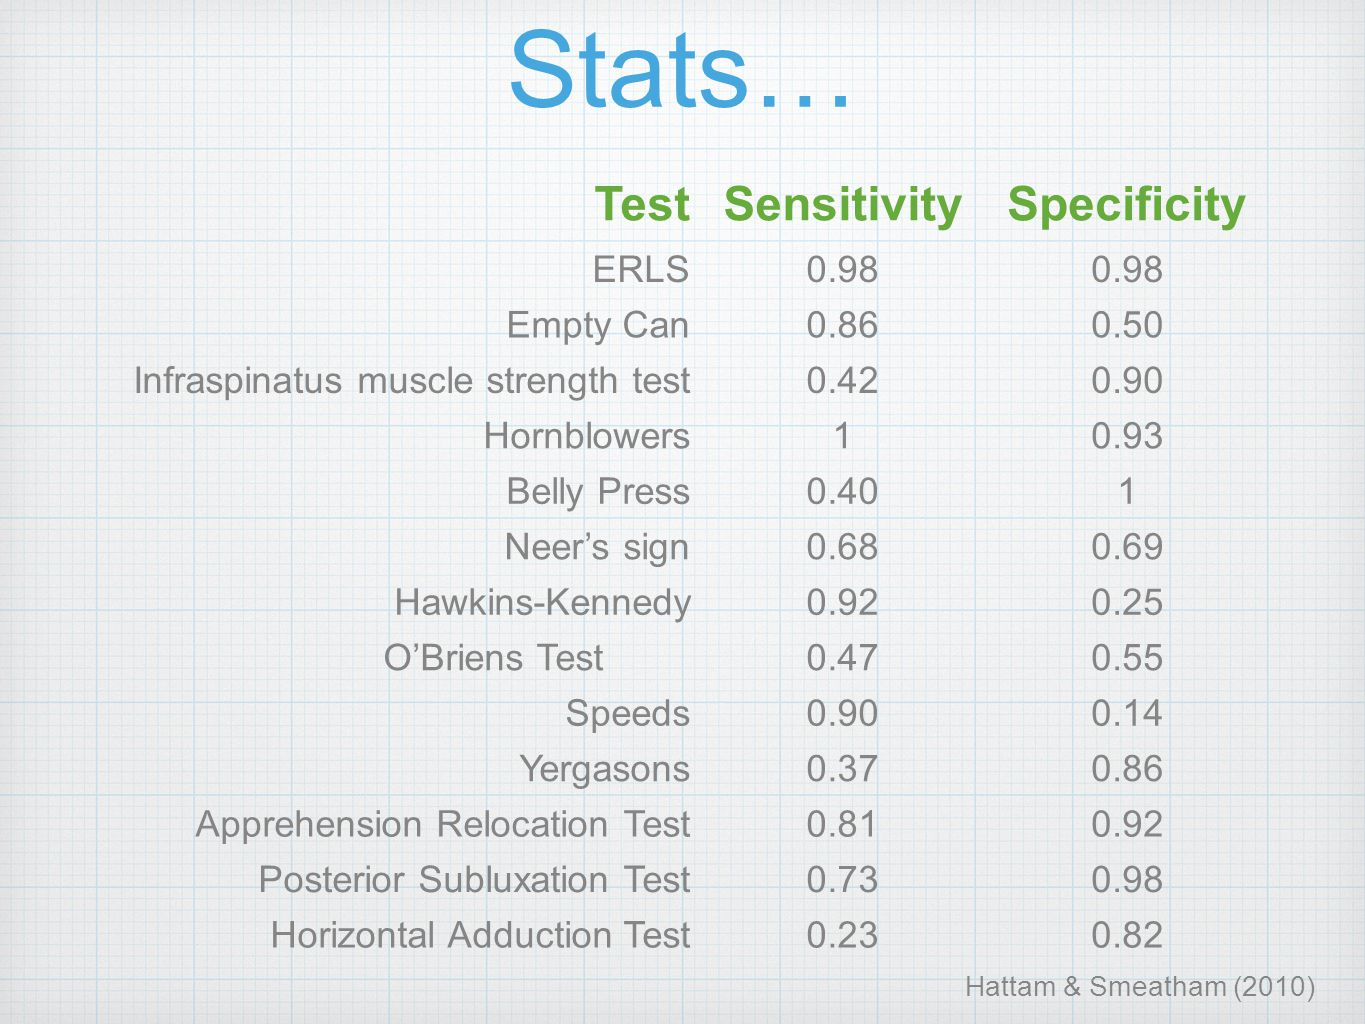 TestSensitivitySpecificity ERLS0.98 Empty Can0.860.50 Infraspinatus muscle strength test0.420.90 Hornblowers10.93 Belly Press0.401 Neer's sign0.680.69